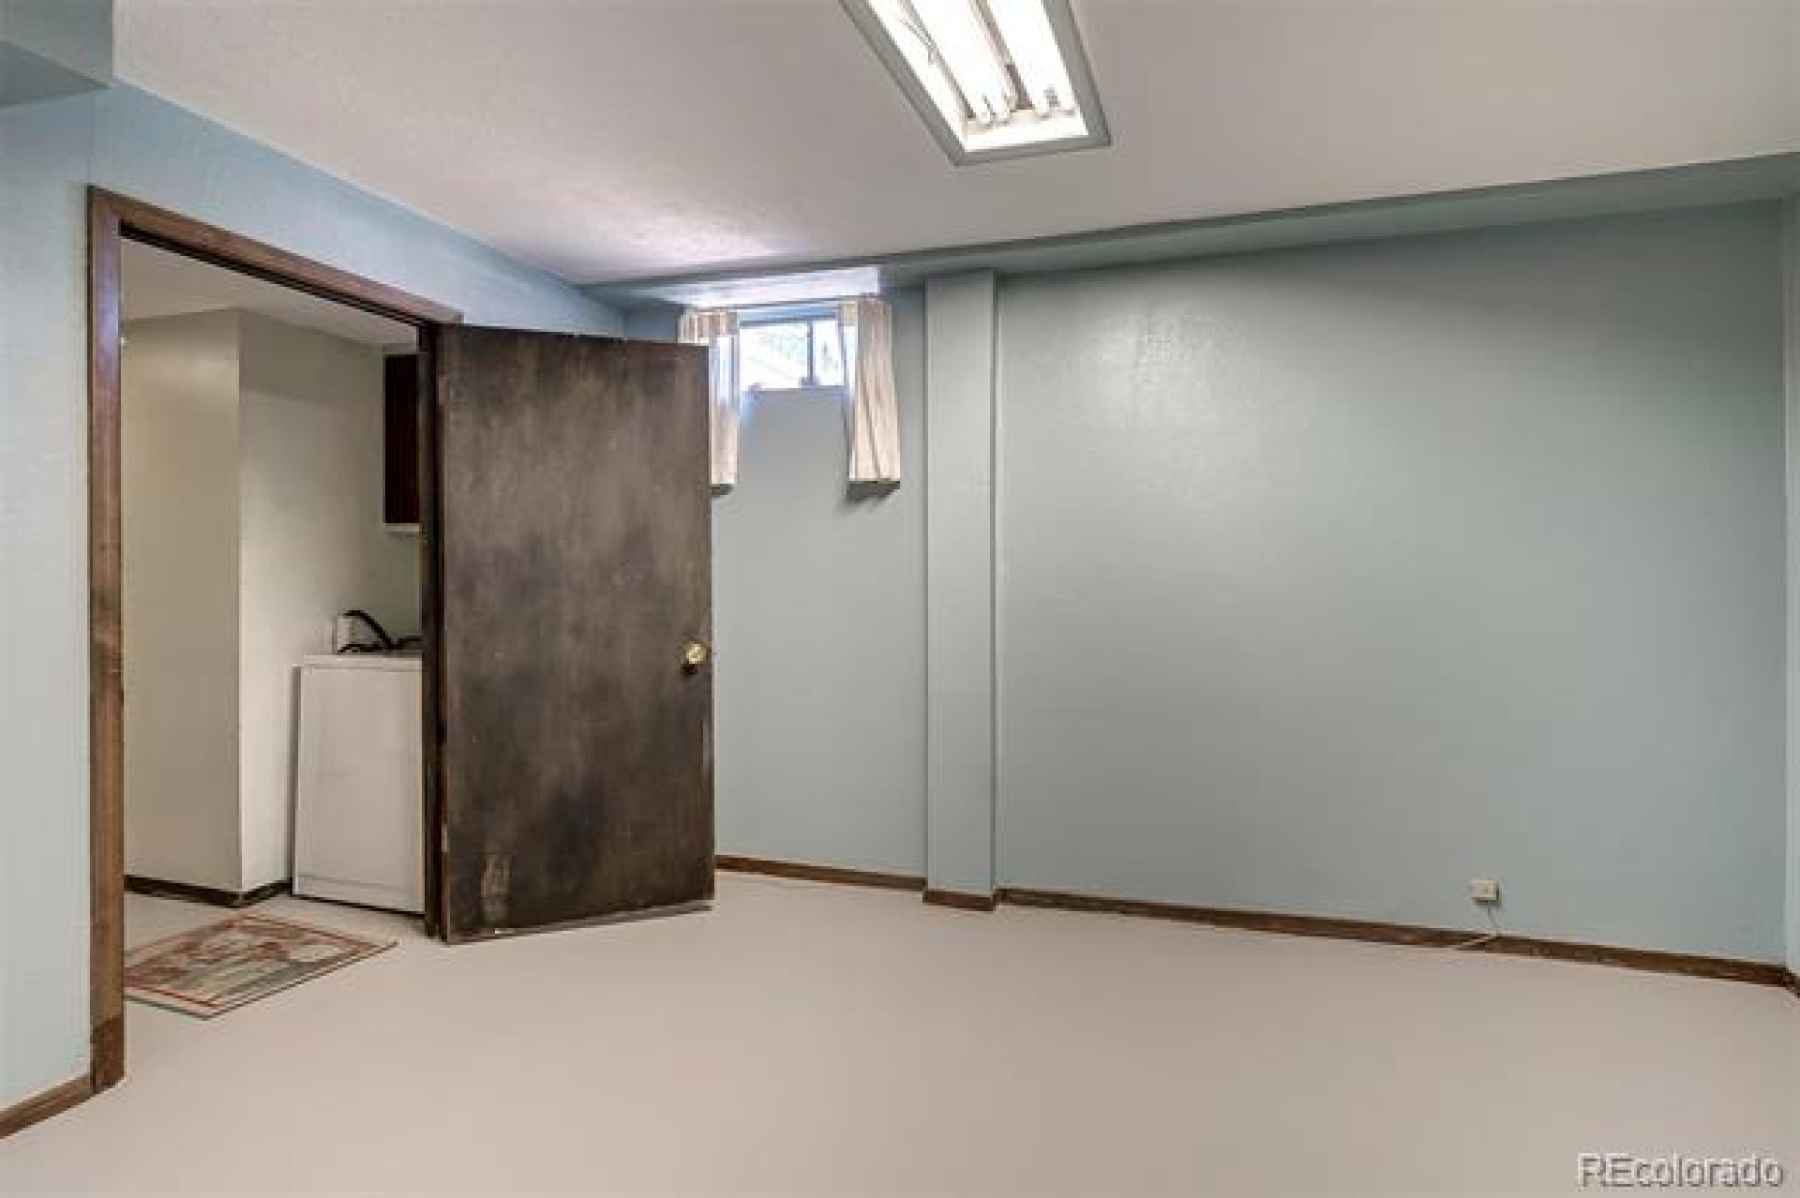 second bedroom in basement leads to laundry